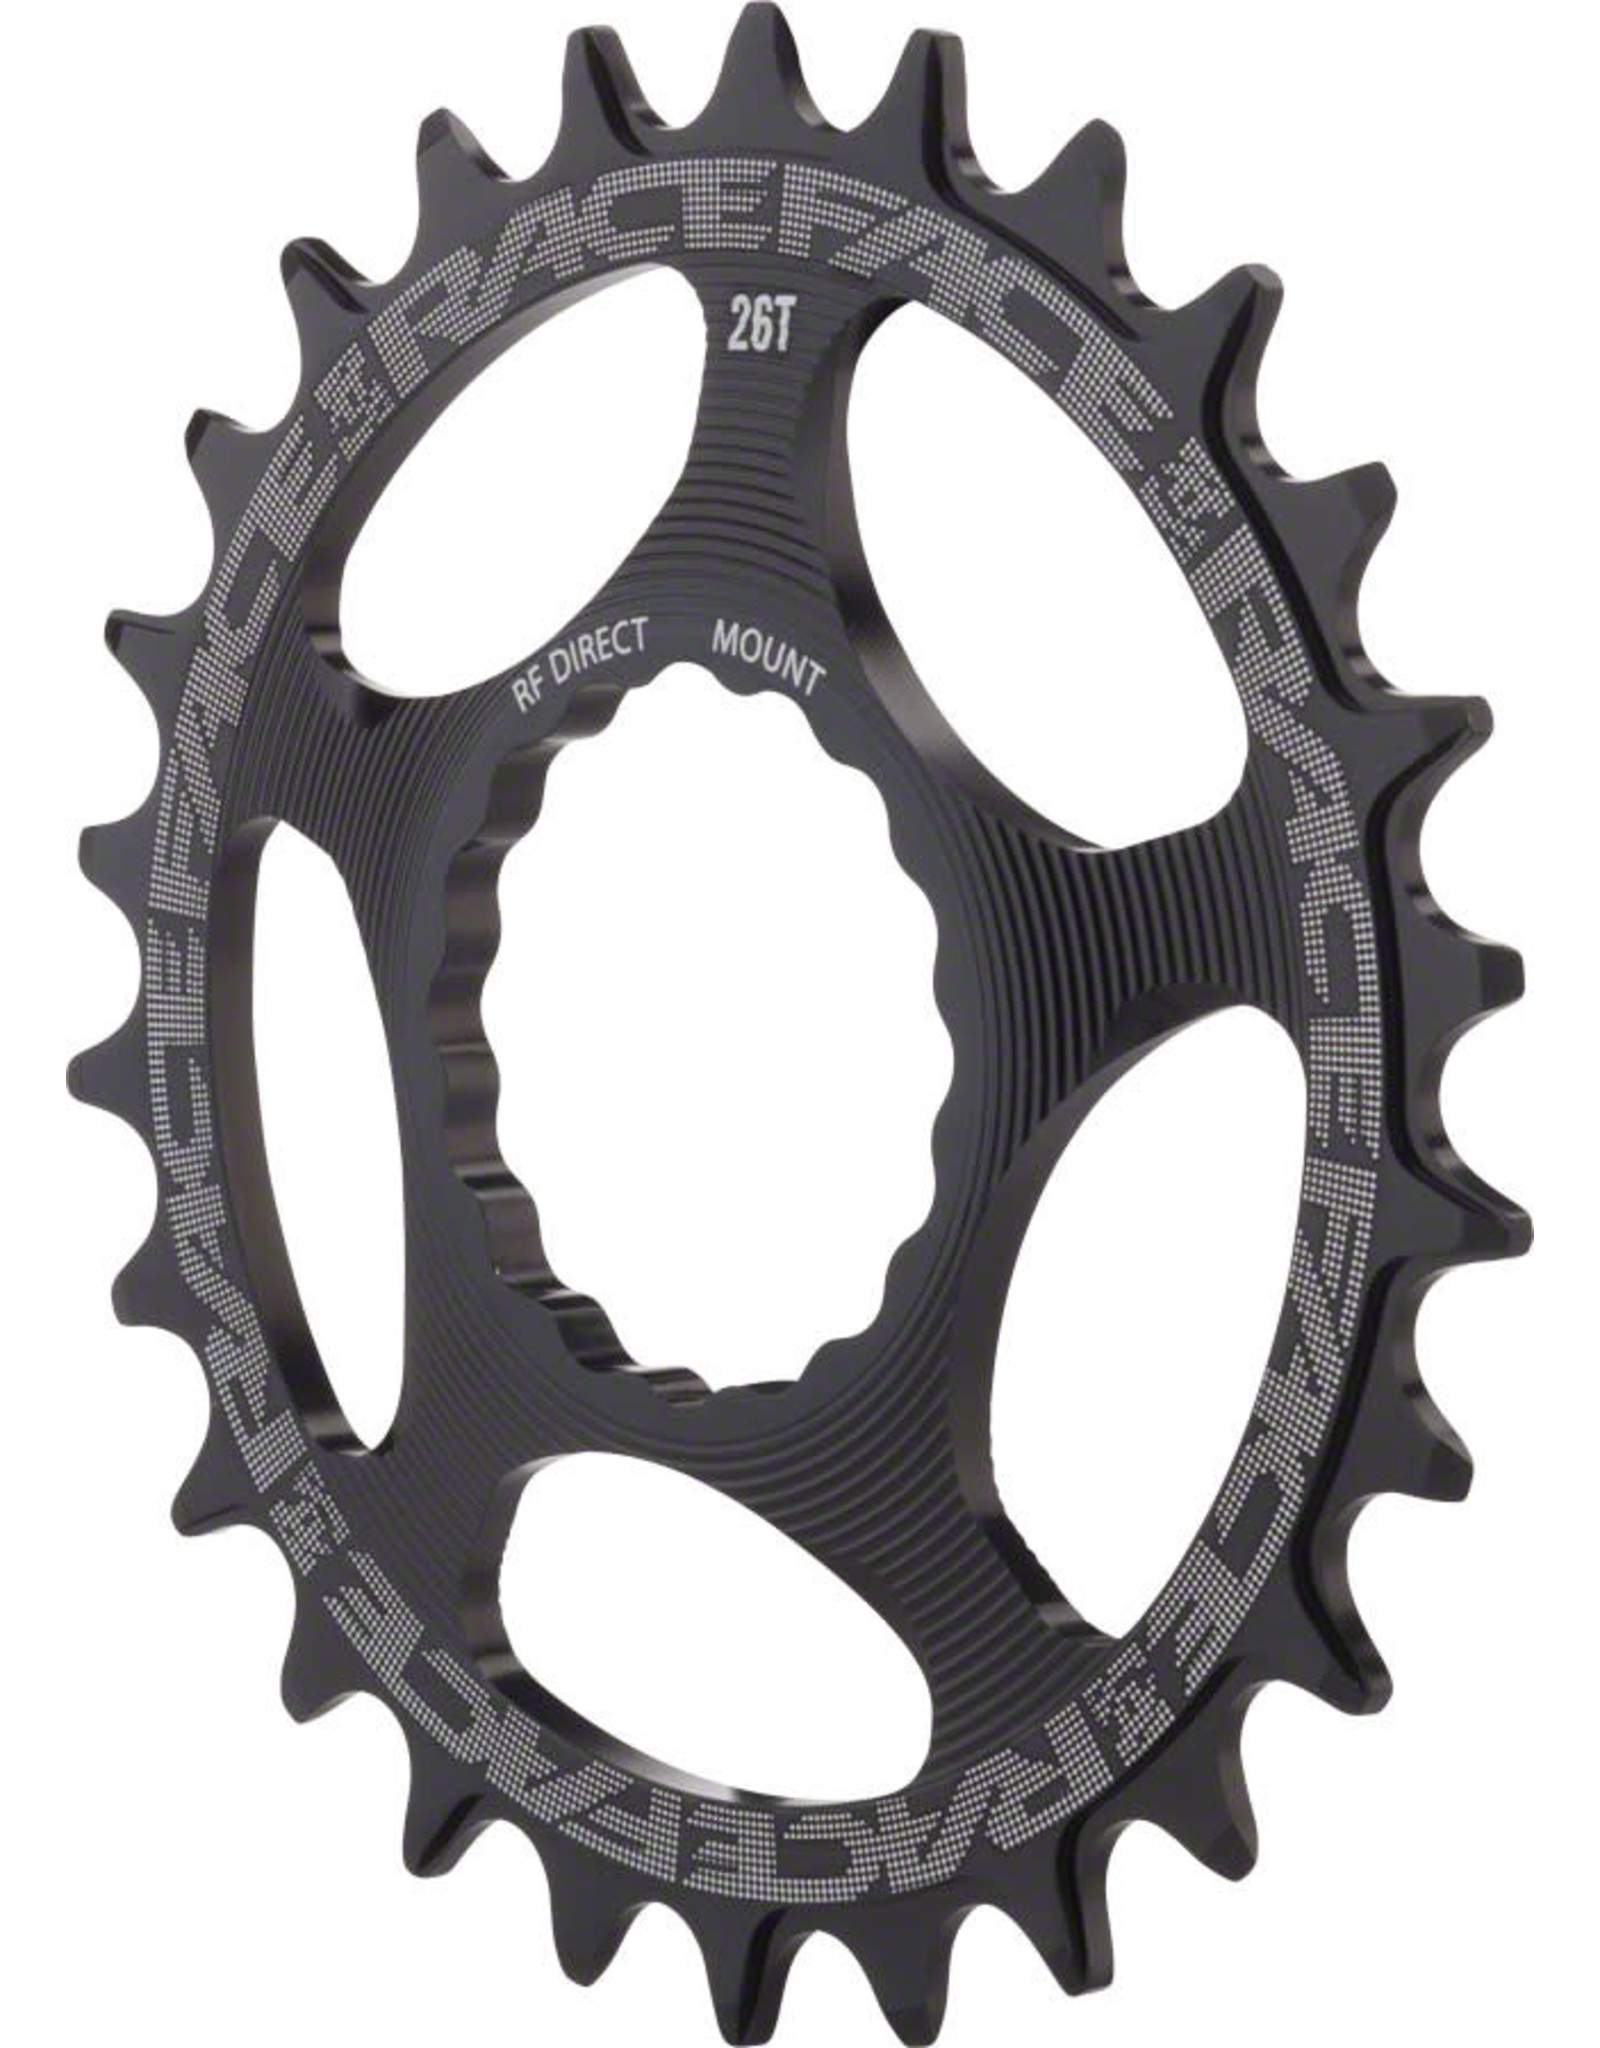 RaceFace RaceFace Narrow Wide Chainring: Direct Mount CINCH, 32t, Black